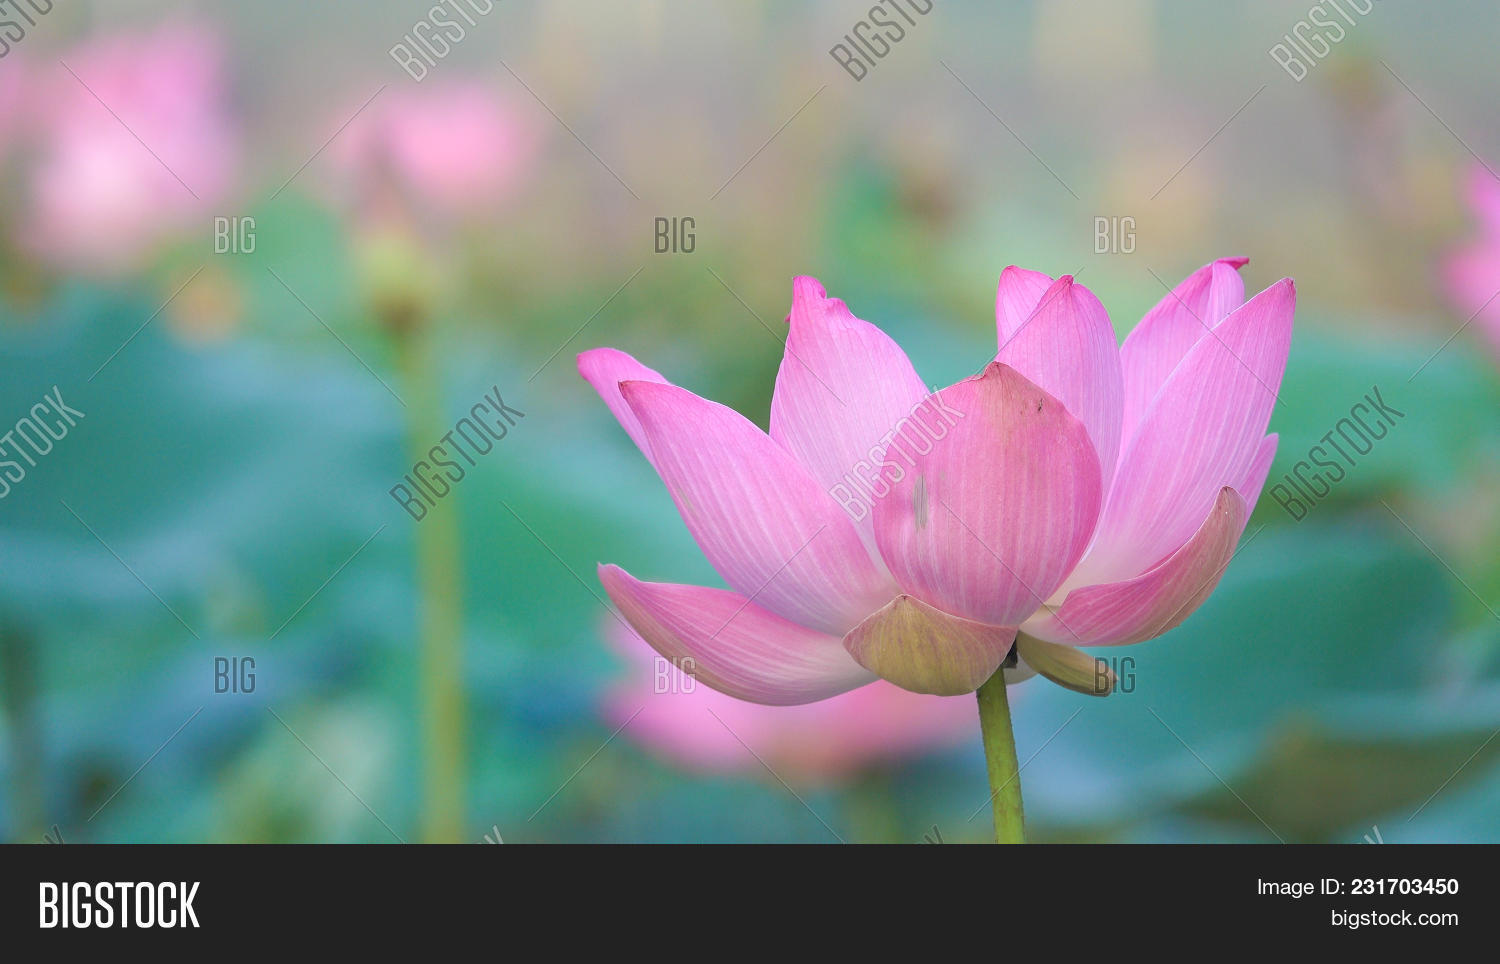 Pink lotus flower image photo free trial bigstock pink lotus flower royalty high quality free stock image of a beautiful pink lotus flower mightylinksfo